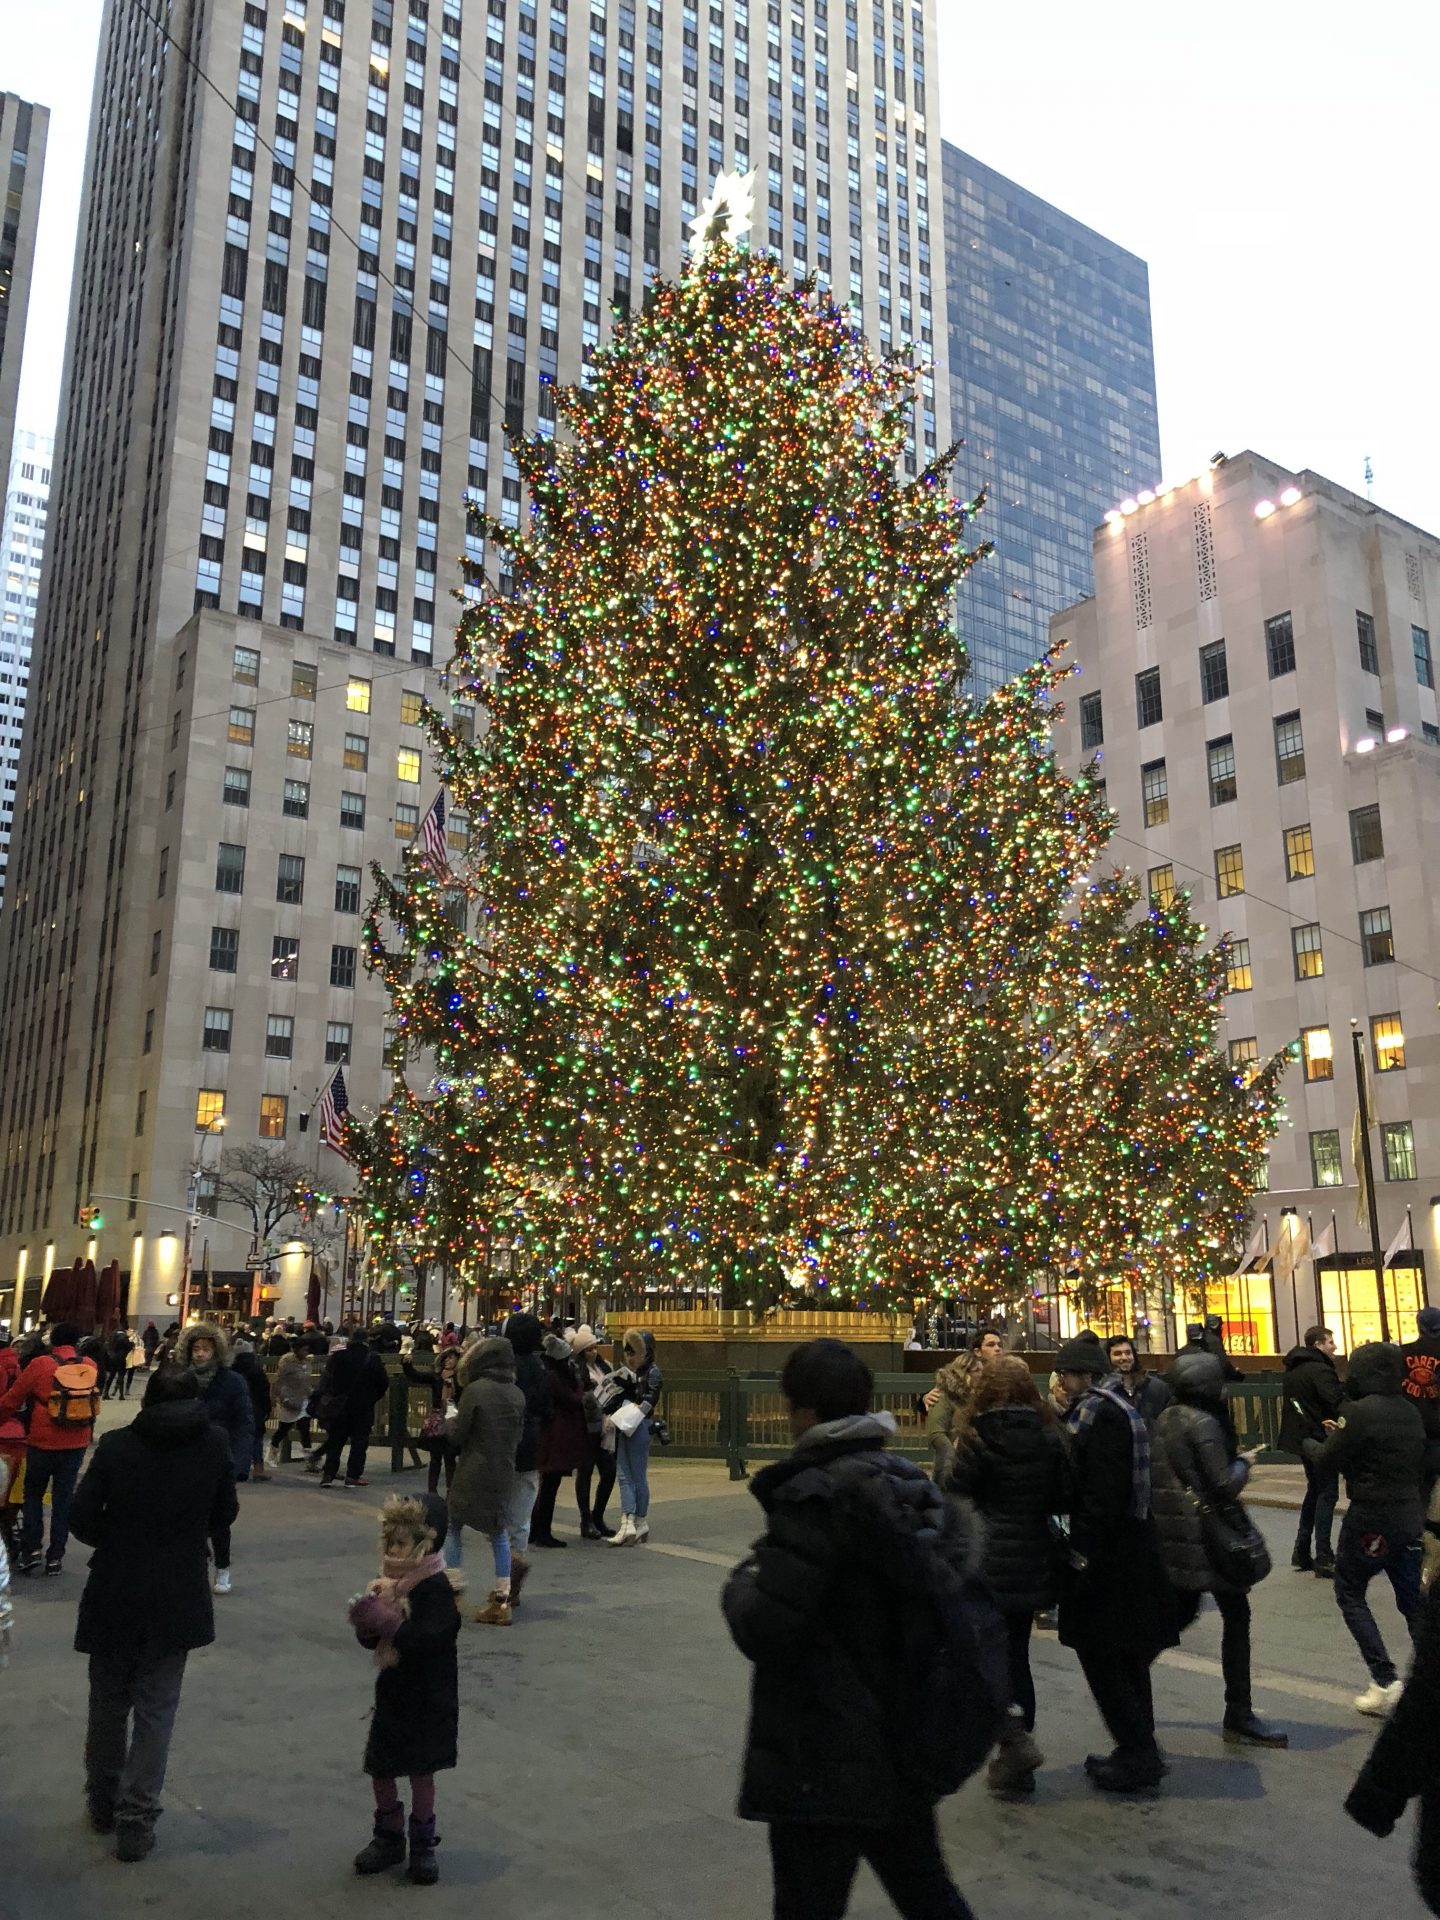 A photo of the Rockefeller Centre Christmas tree